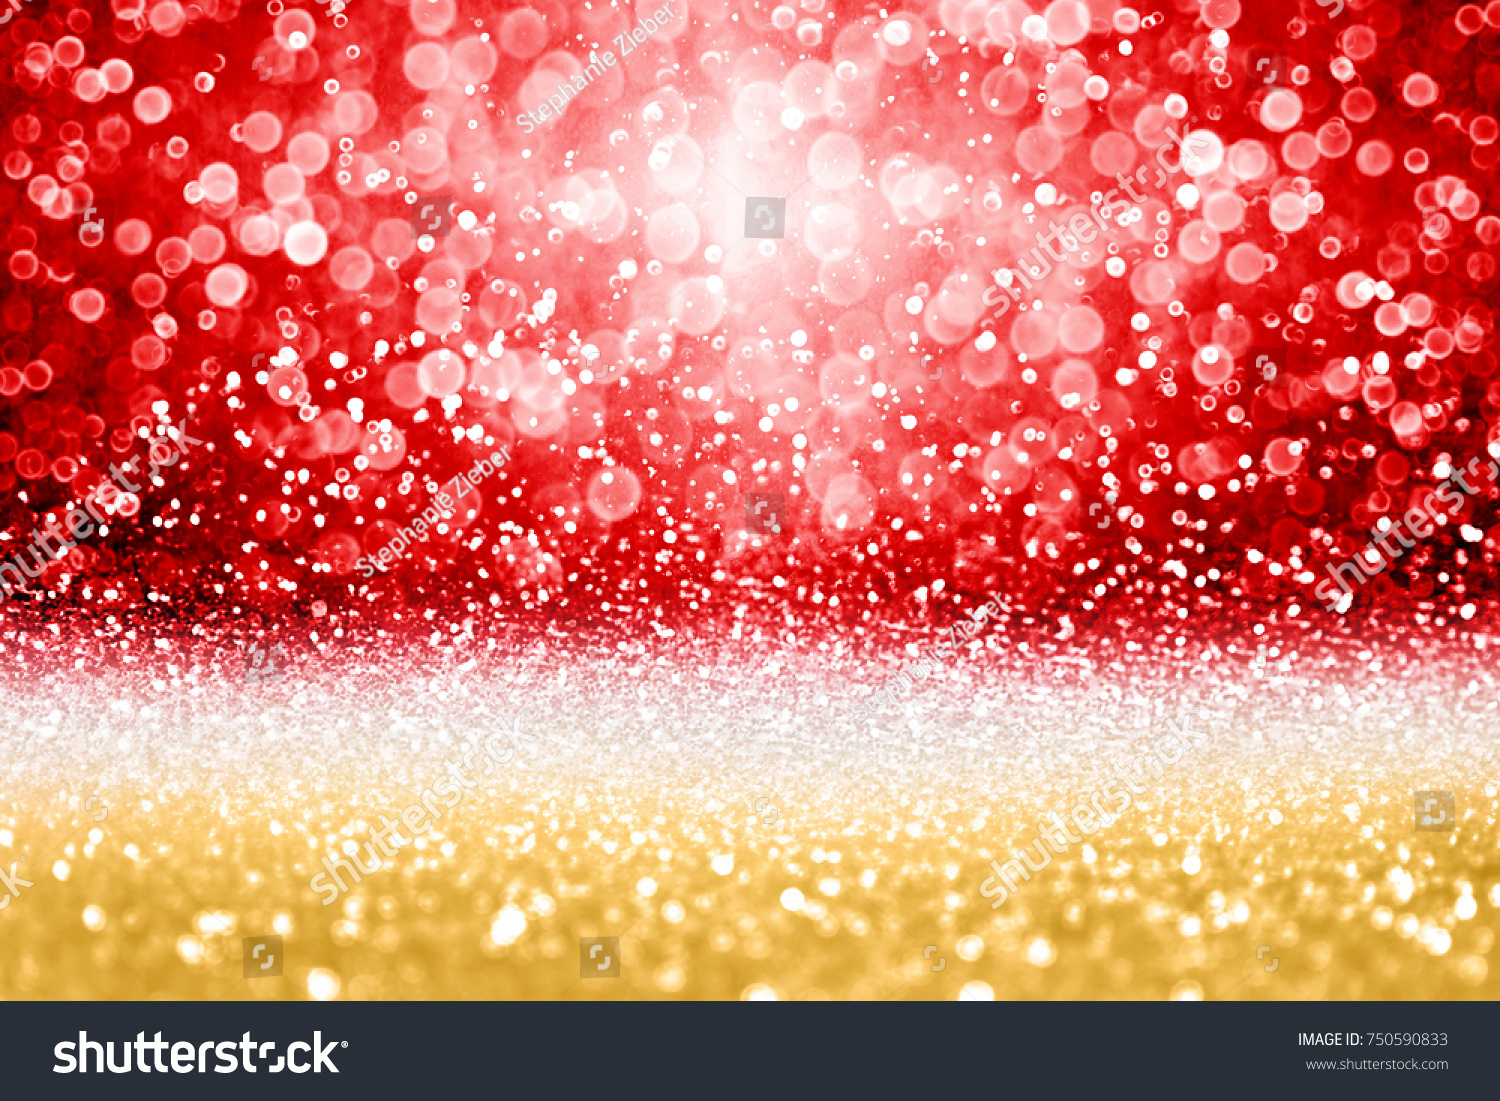 Elegant Red Gold Glitter Sparkle Confetti Stock Photo (Edit Now ...